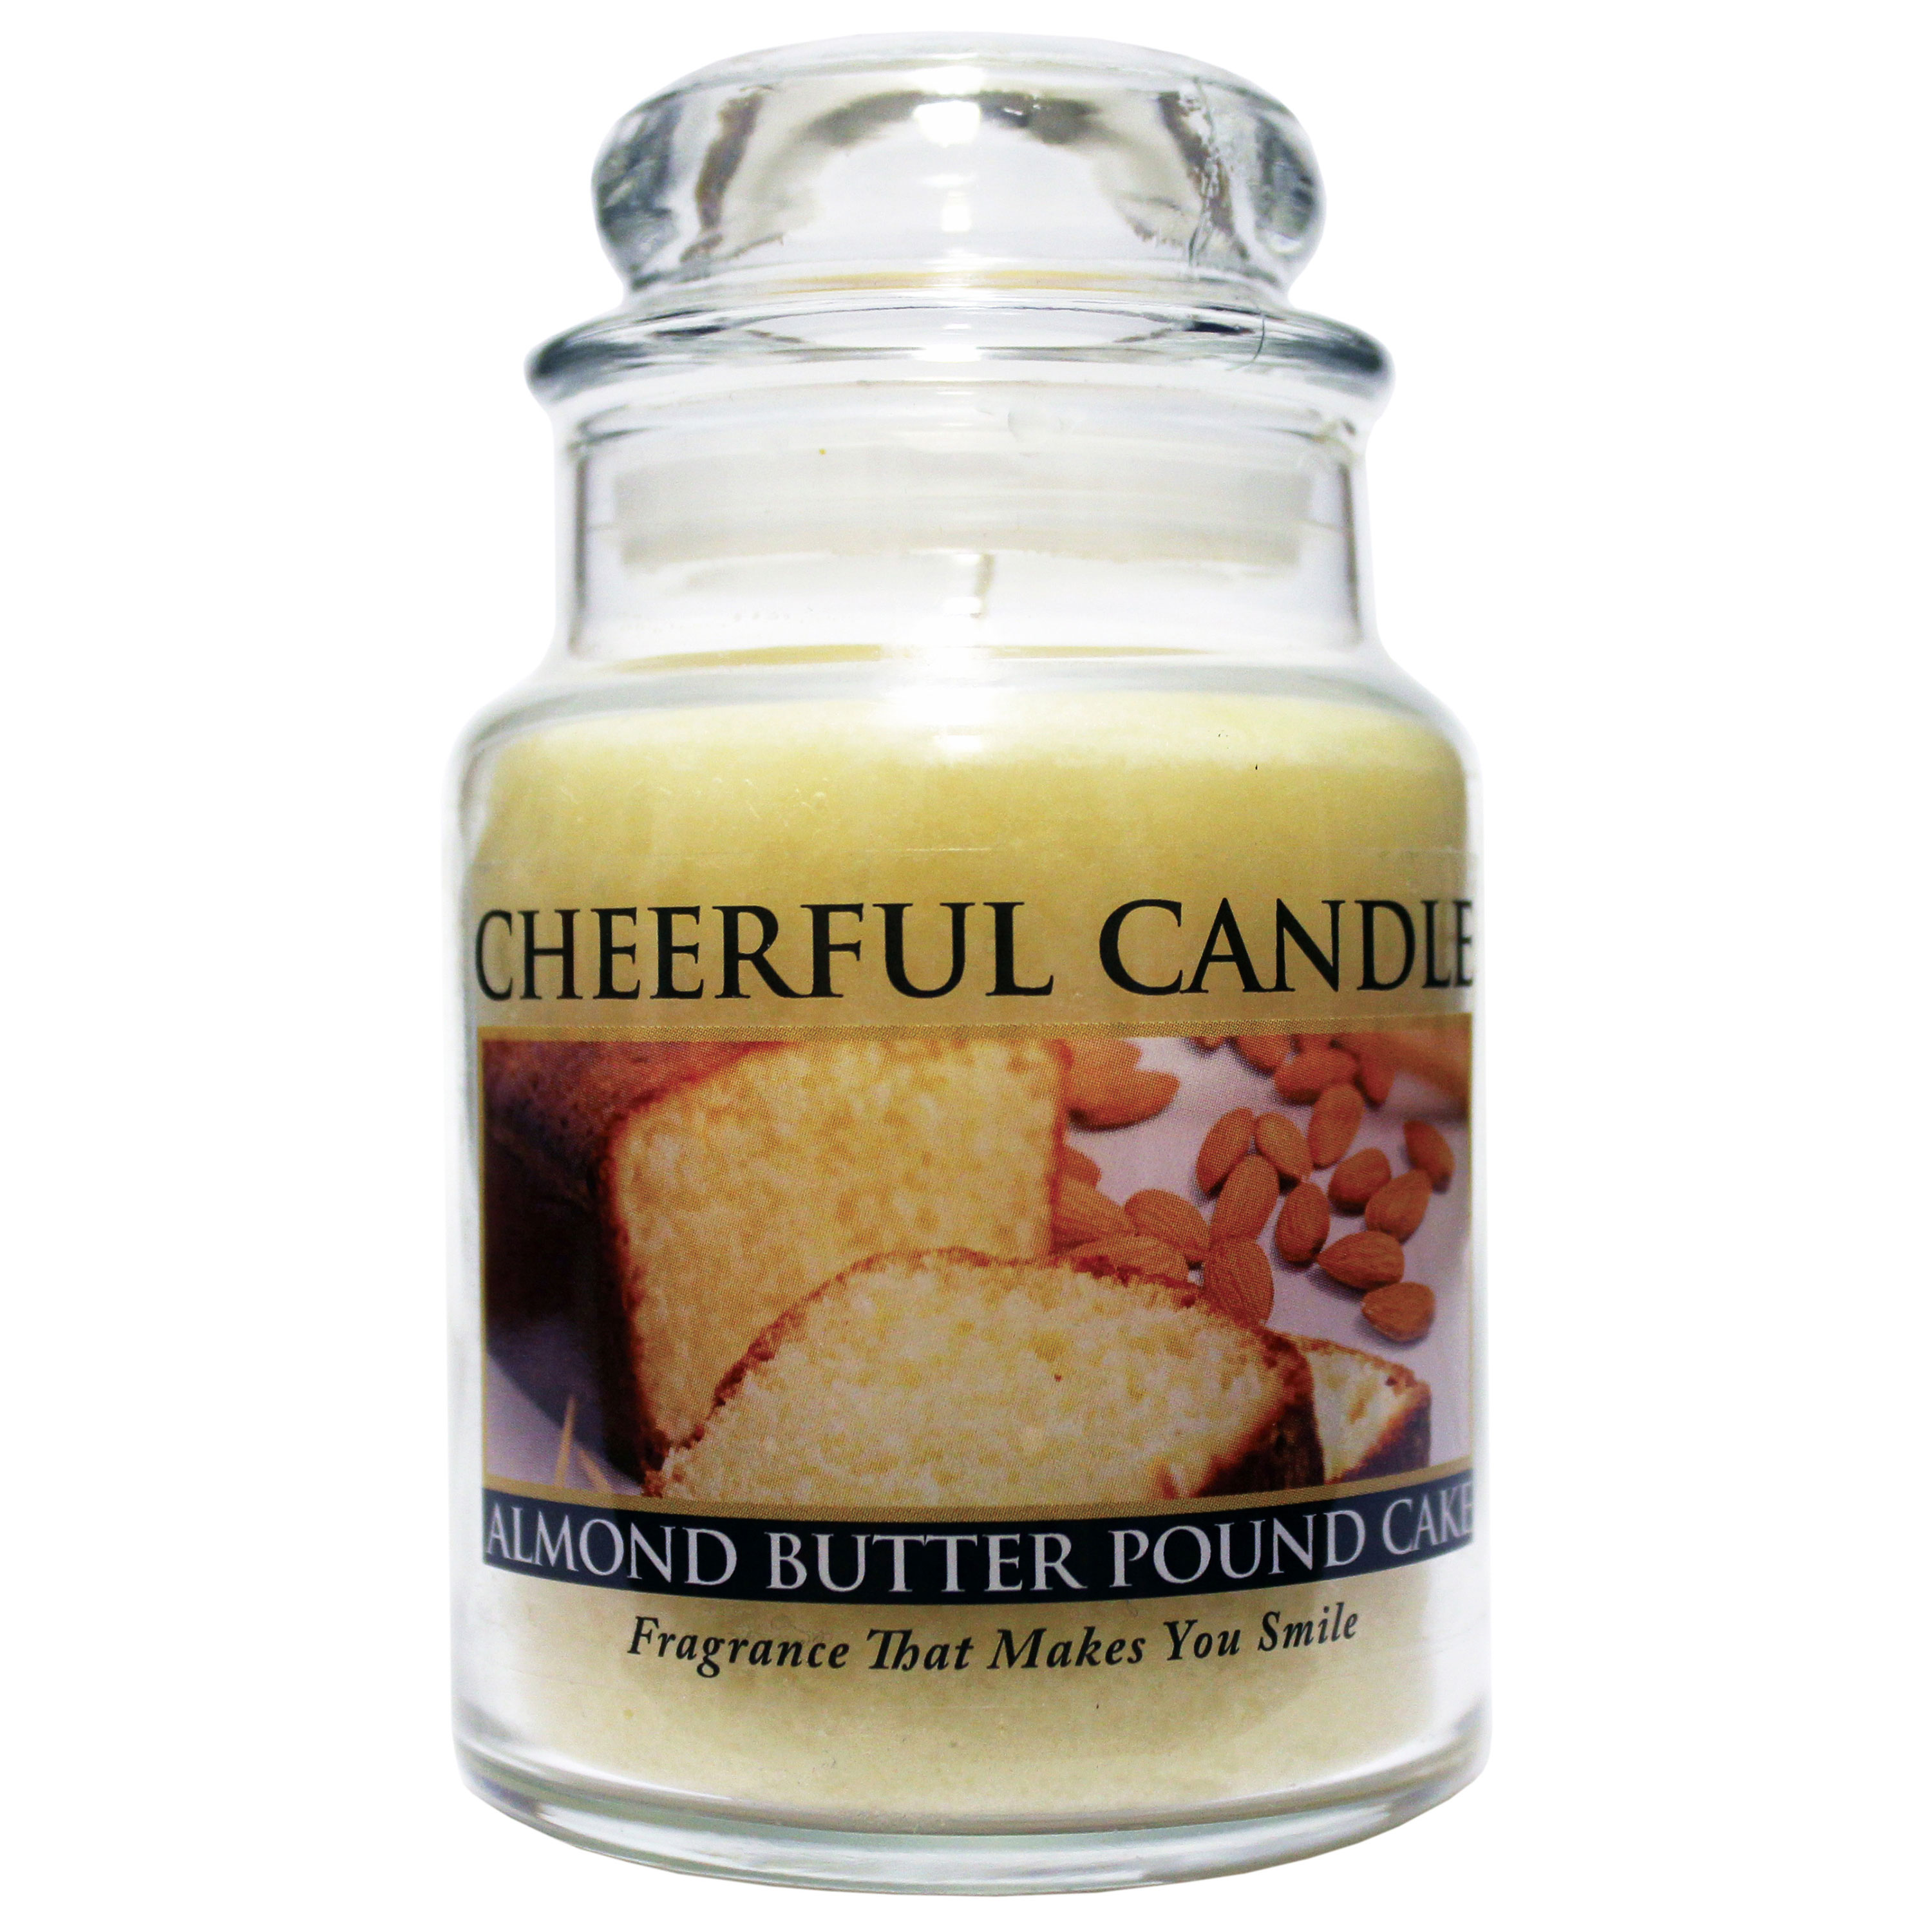 Almond Butter Pound Cake 6oz Cheerful Candle